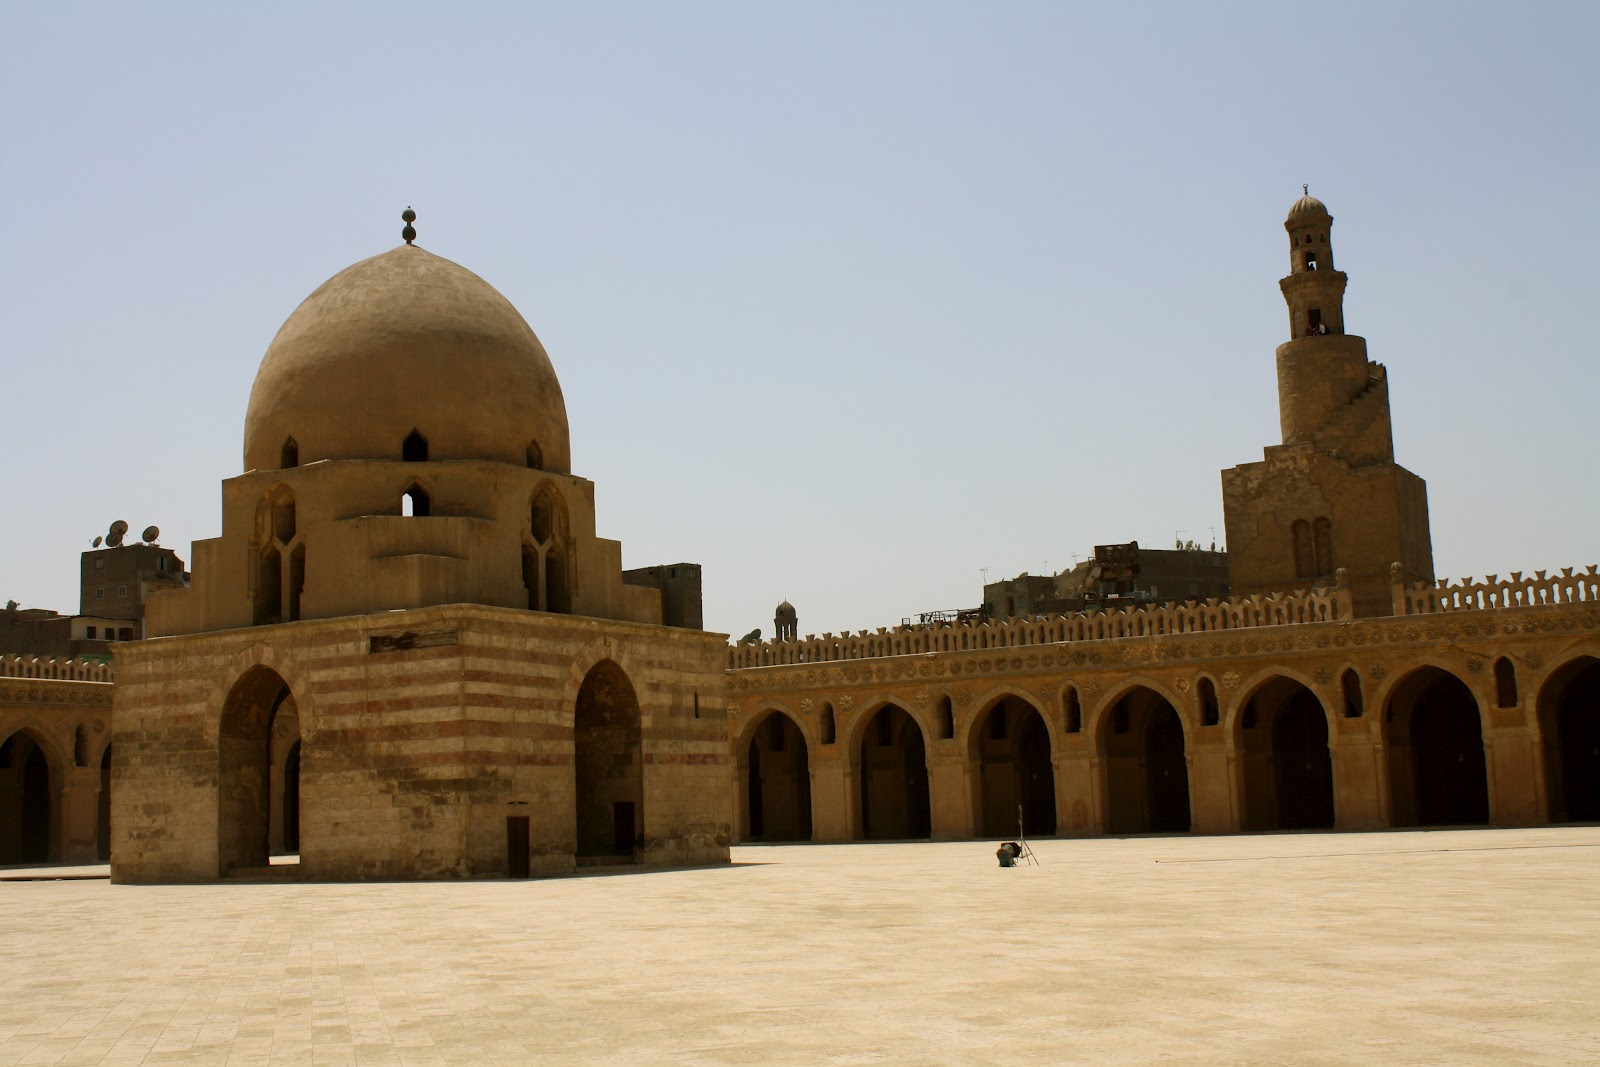 The ablution fountain, courtyard, and minaret. (Photo by author)